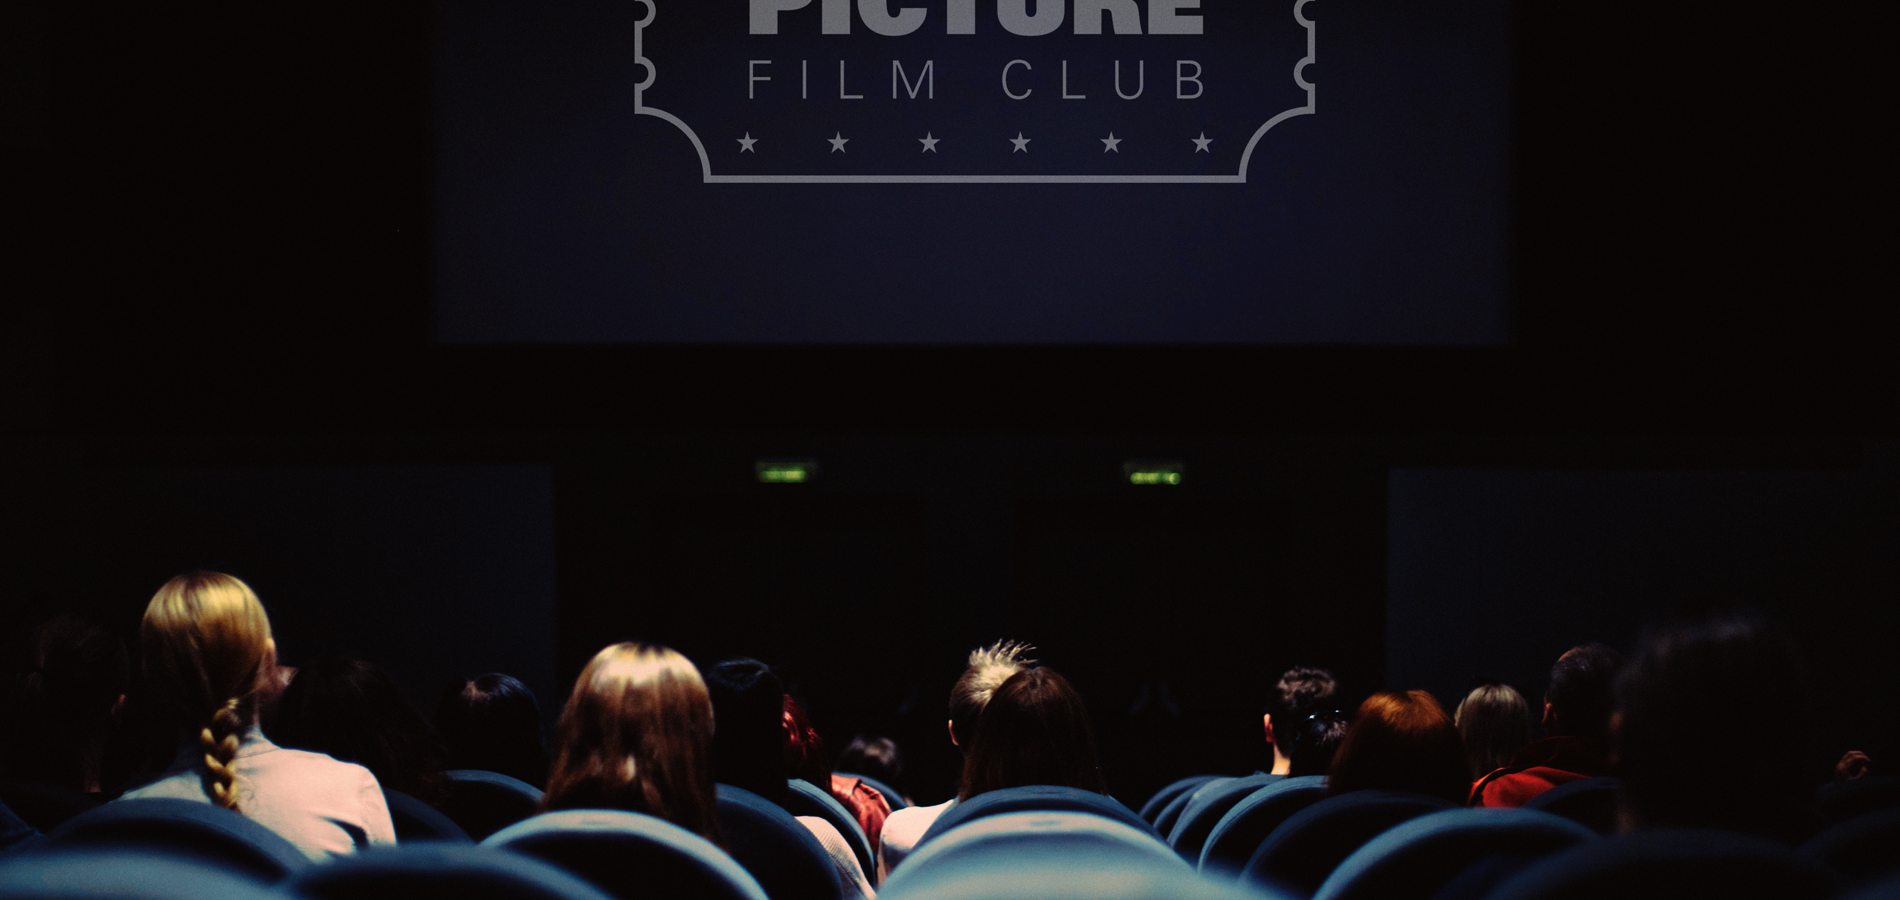 Big Picture Film Club Website Banner